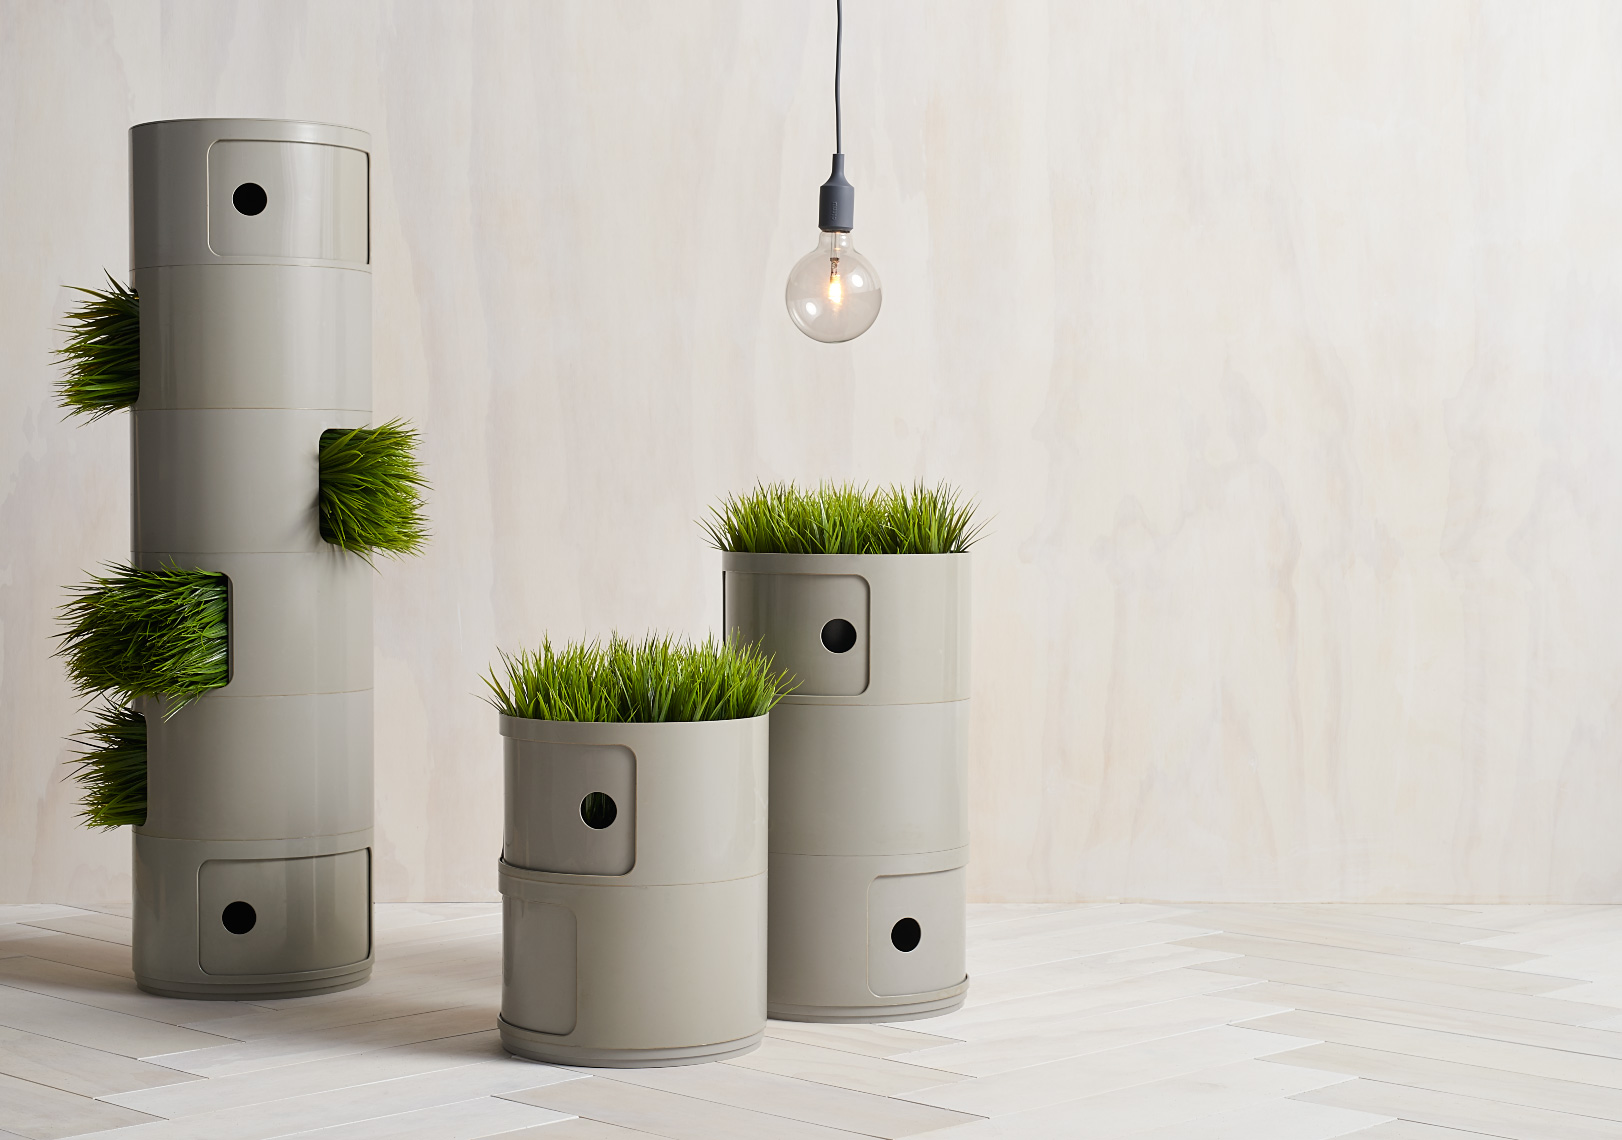 gray stackable plastic drawers with green grass against white washed wall and herringbone floor